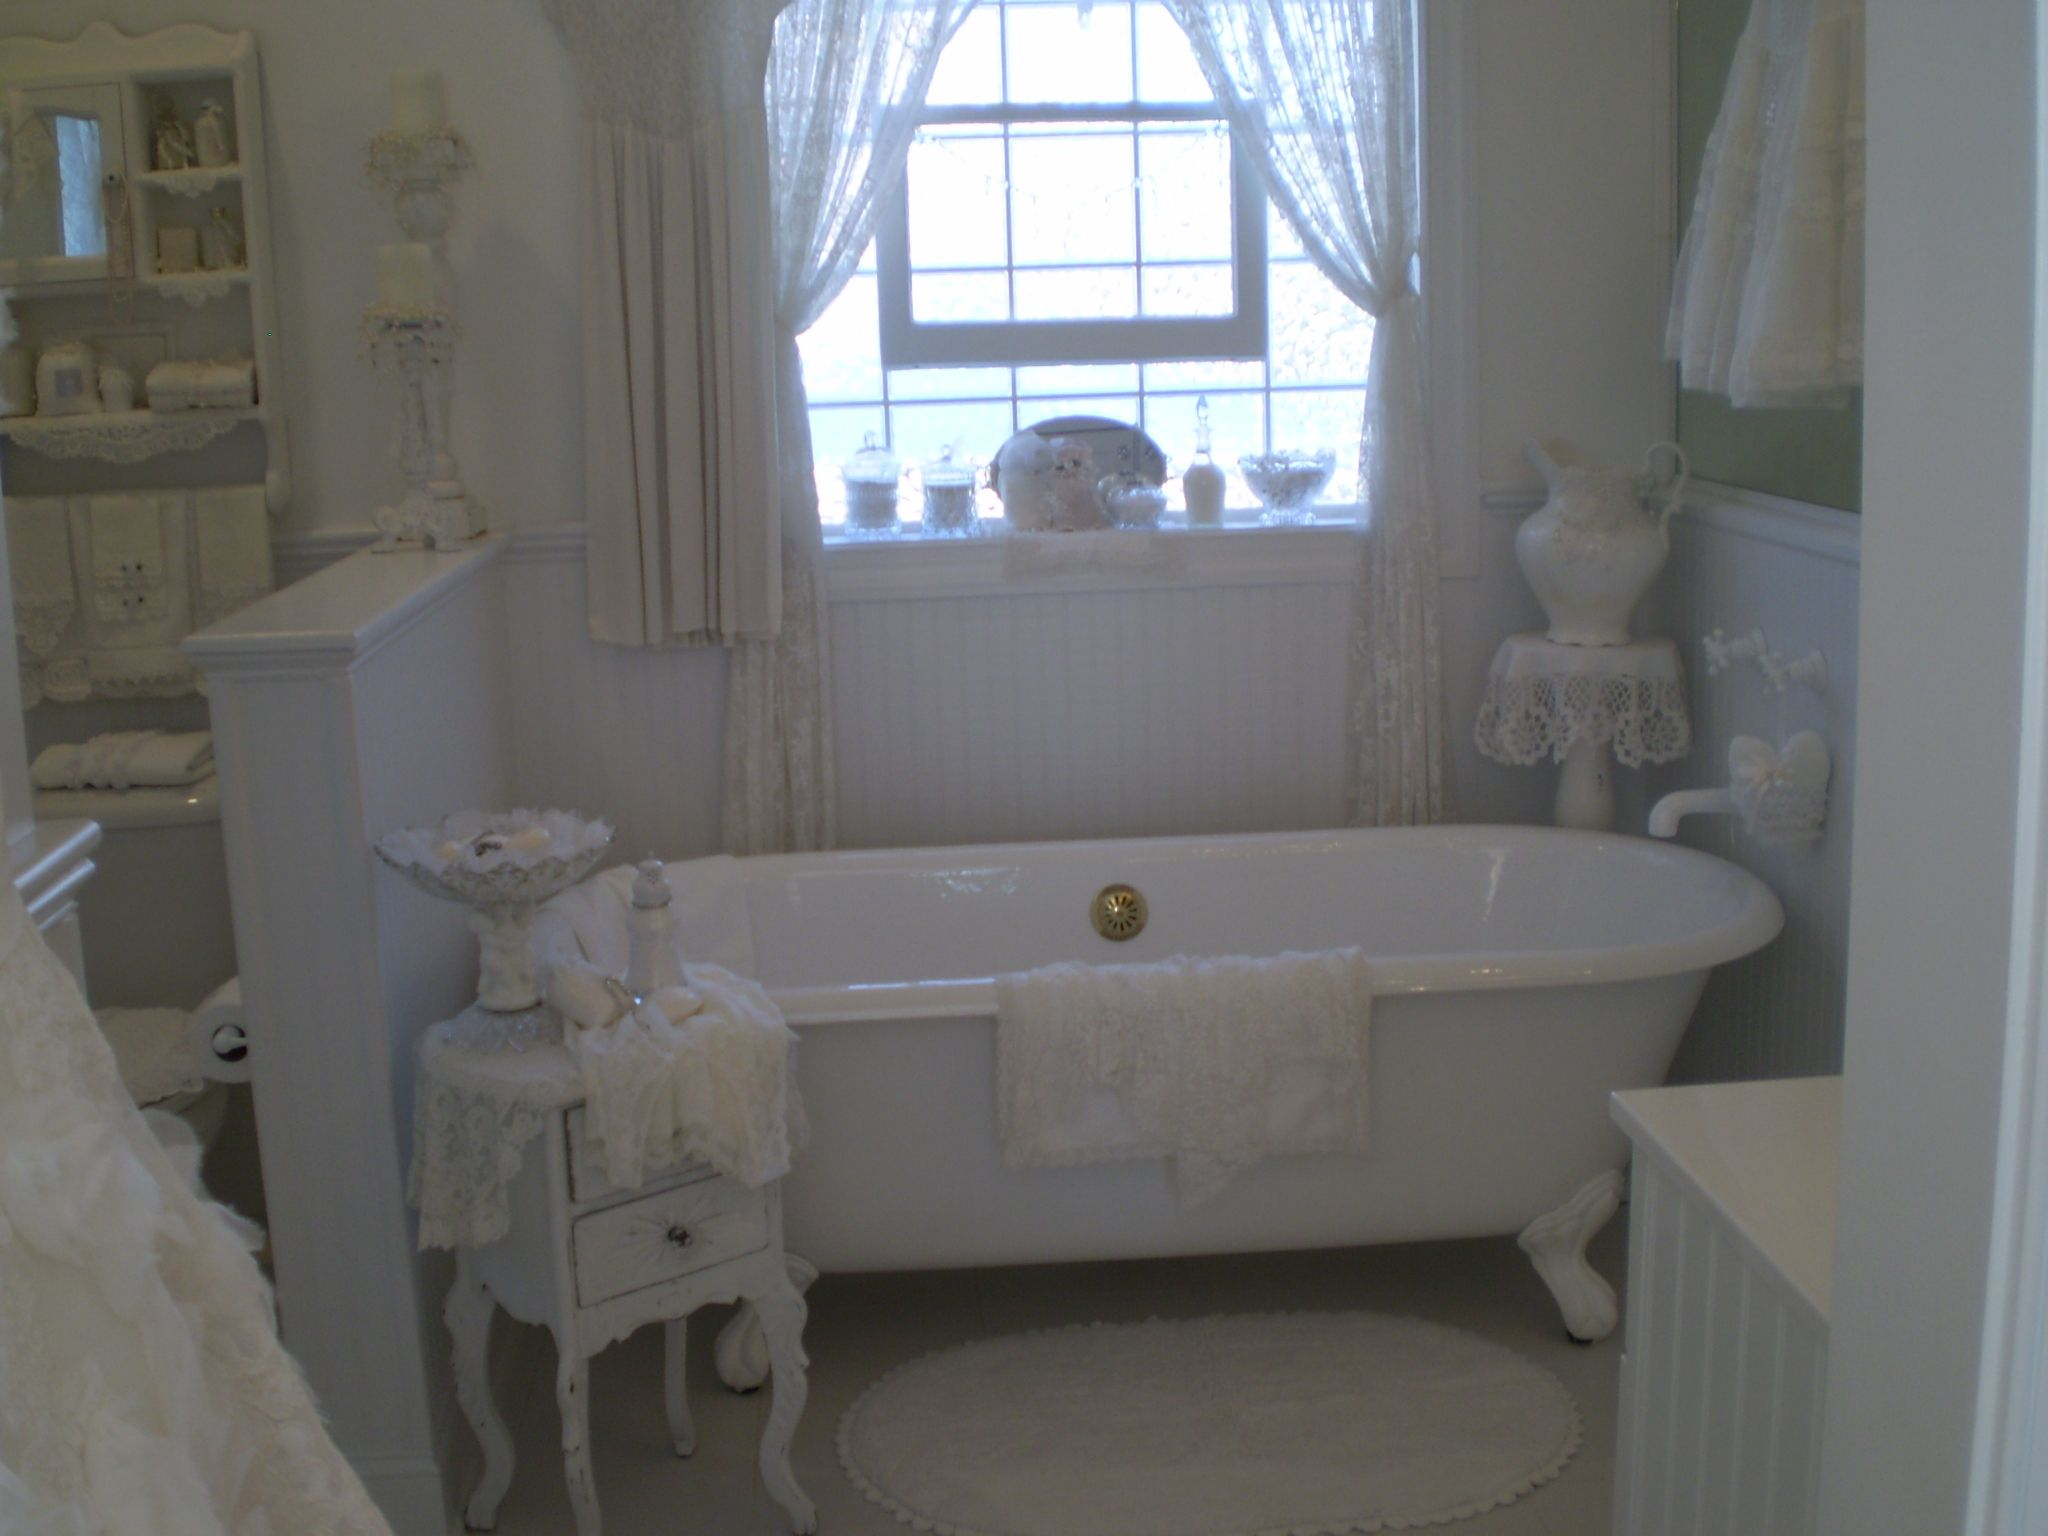 Romantic White Vintage Bathroom with clawfoot tub @Beatrice Le Leu Le Leu Le Leu Banks